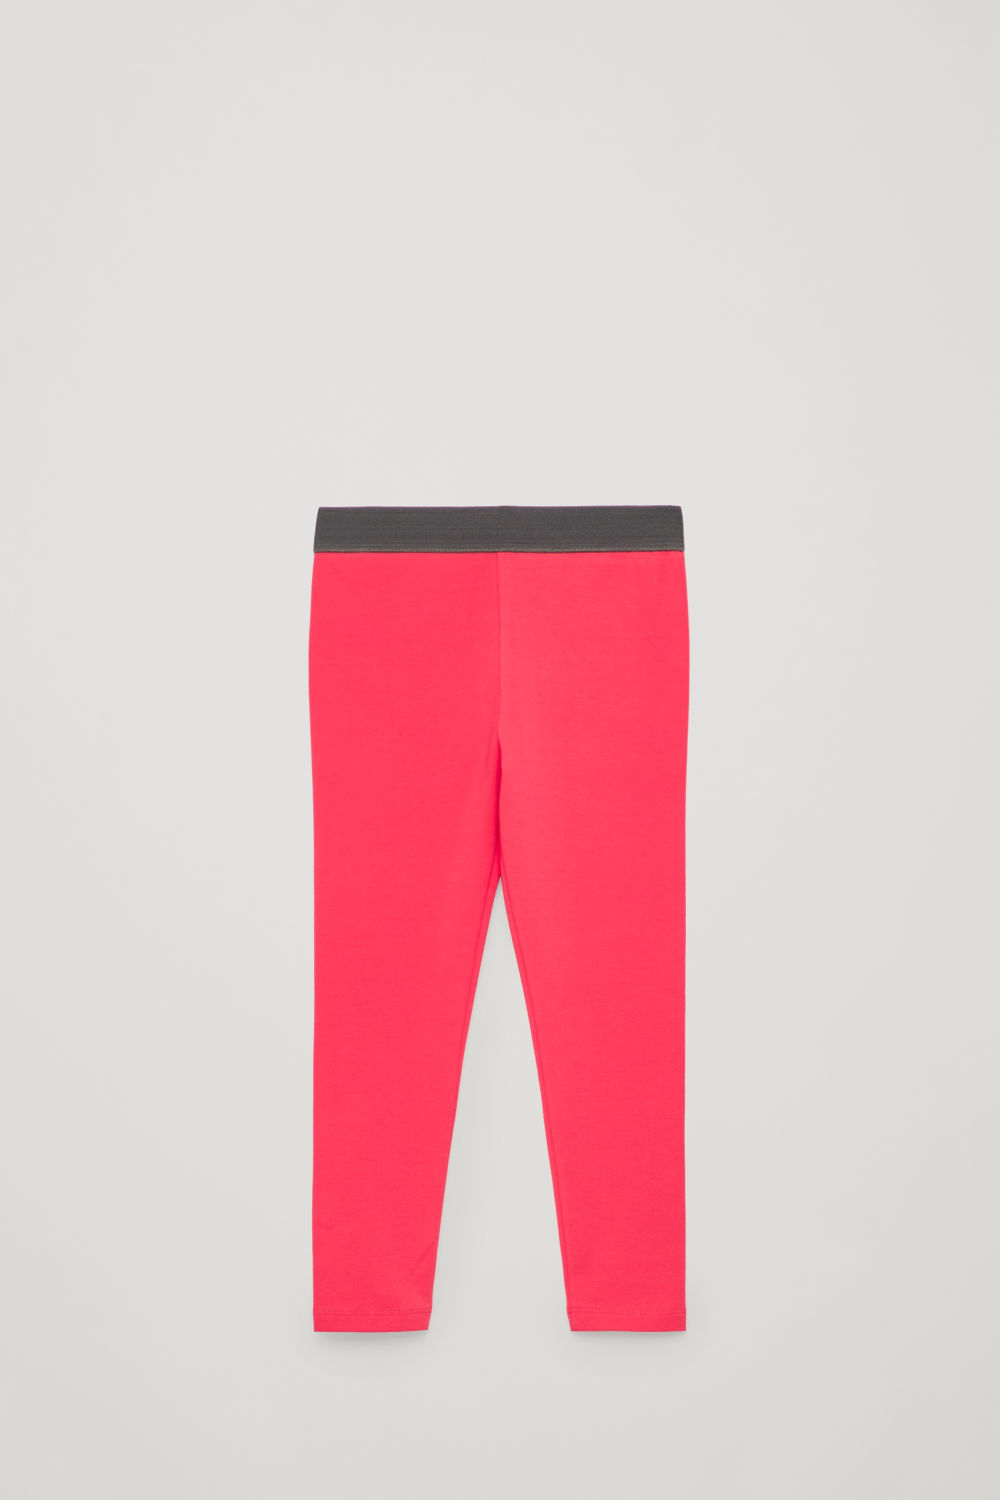 코스 보이즈 레깅스 COS COTTON JERSEY LEGGINGS,Vibrant pink